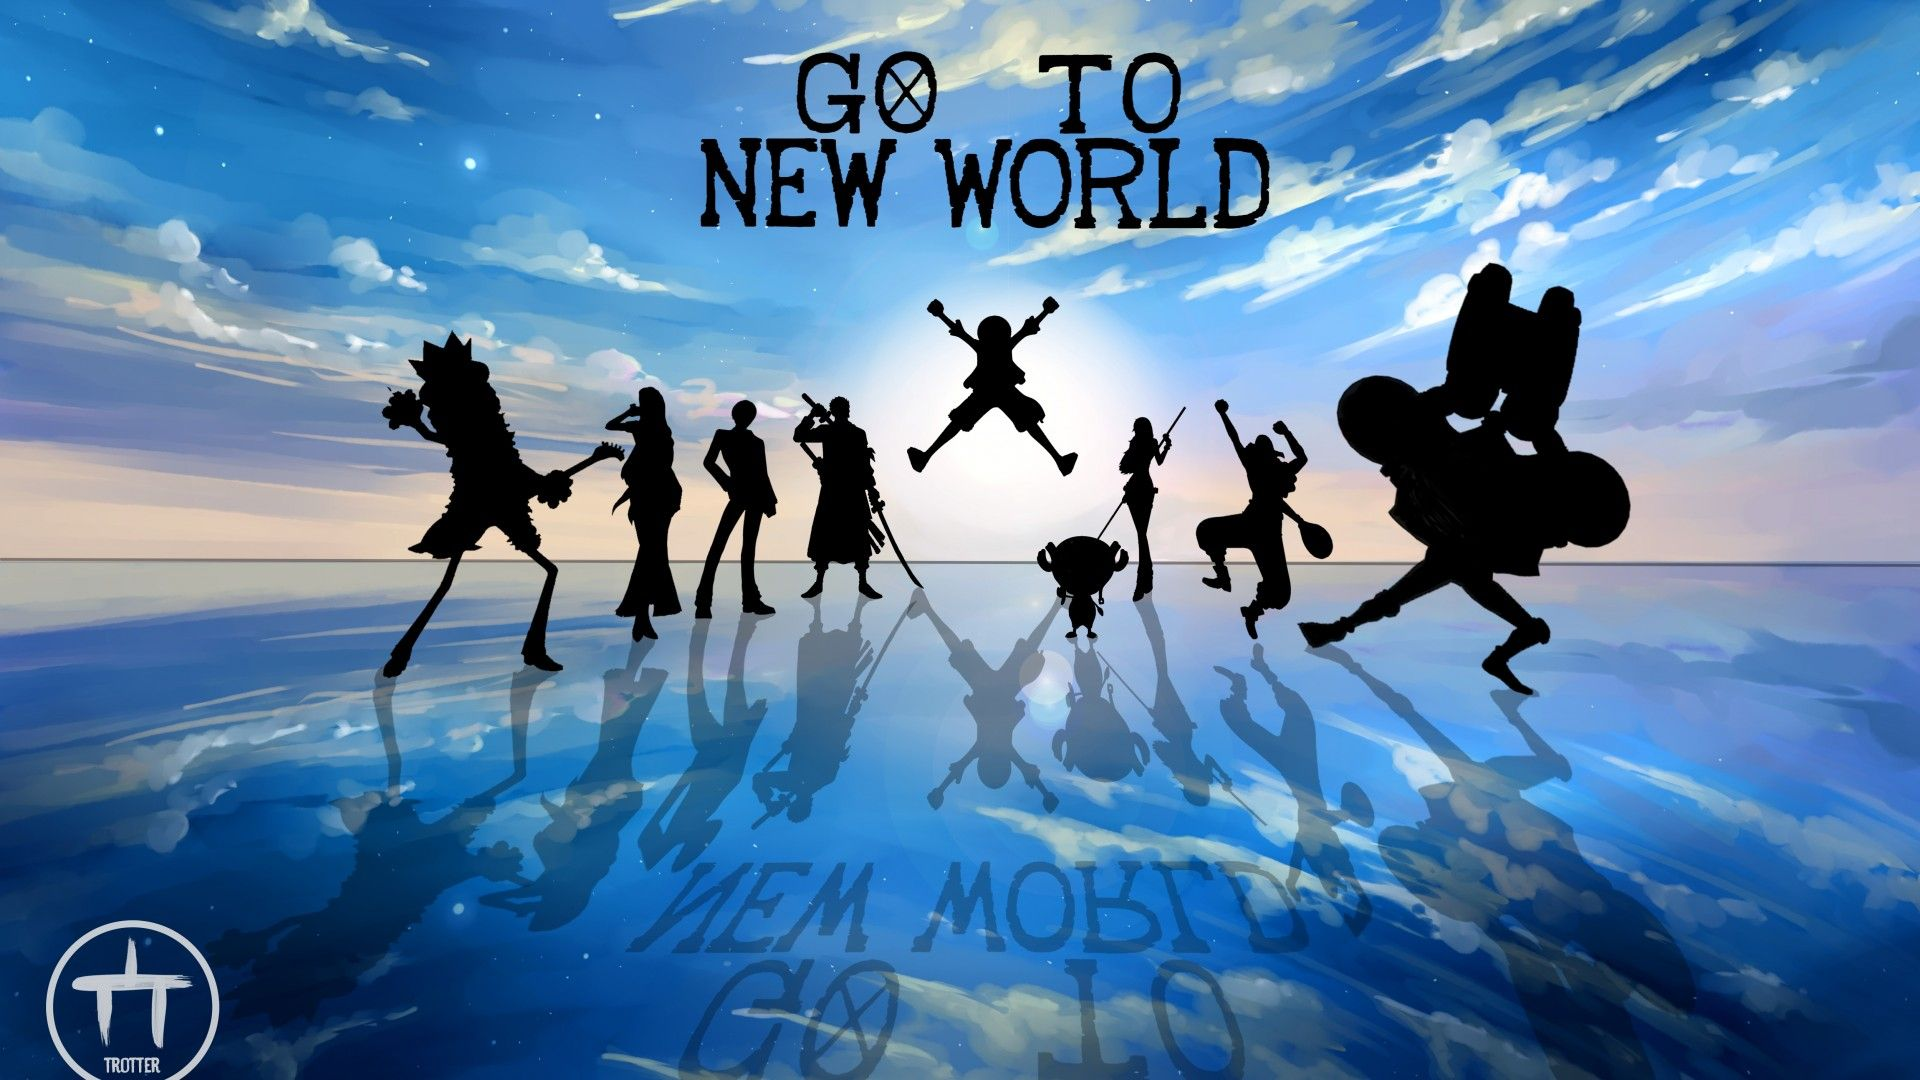 One Piece New World Wallpaper Full Hd One Piece New World Brooks One Piece One Piece Wallpaper Iphone